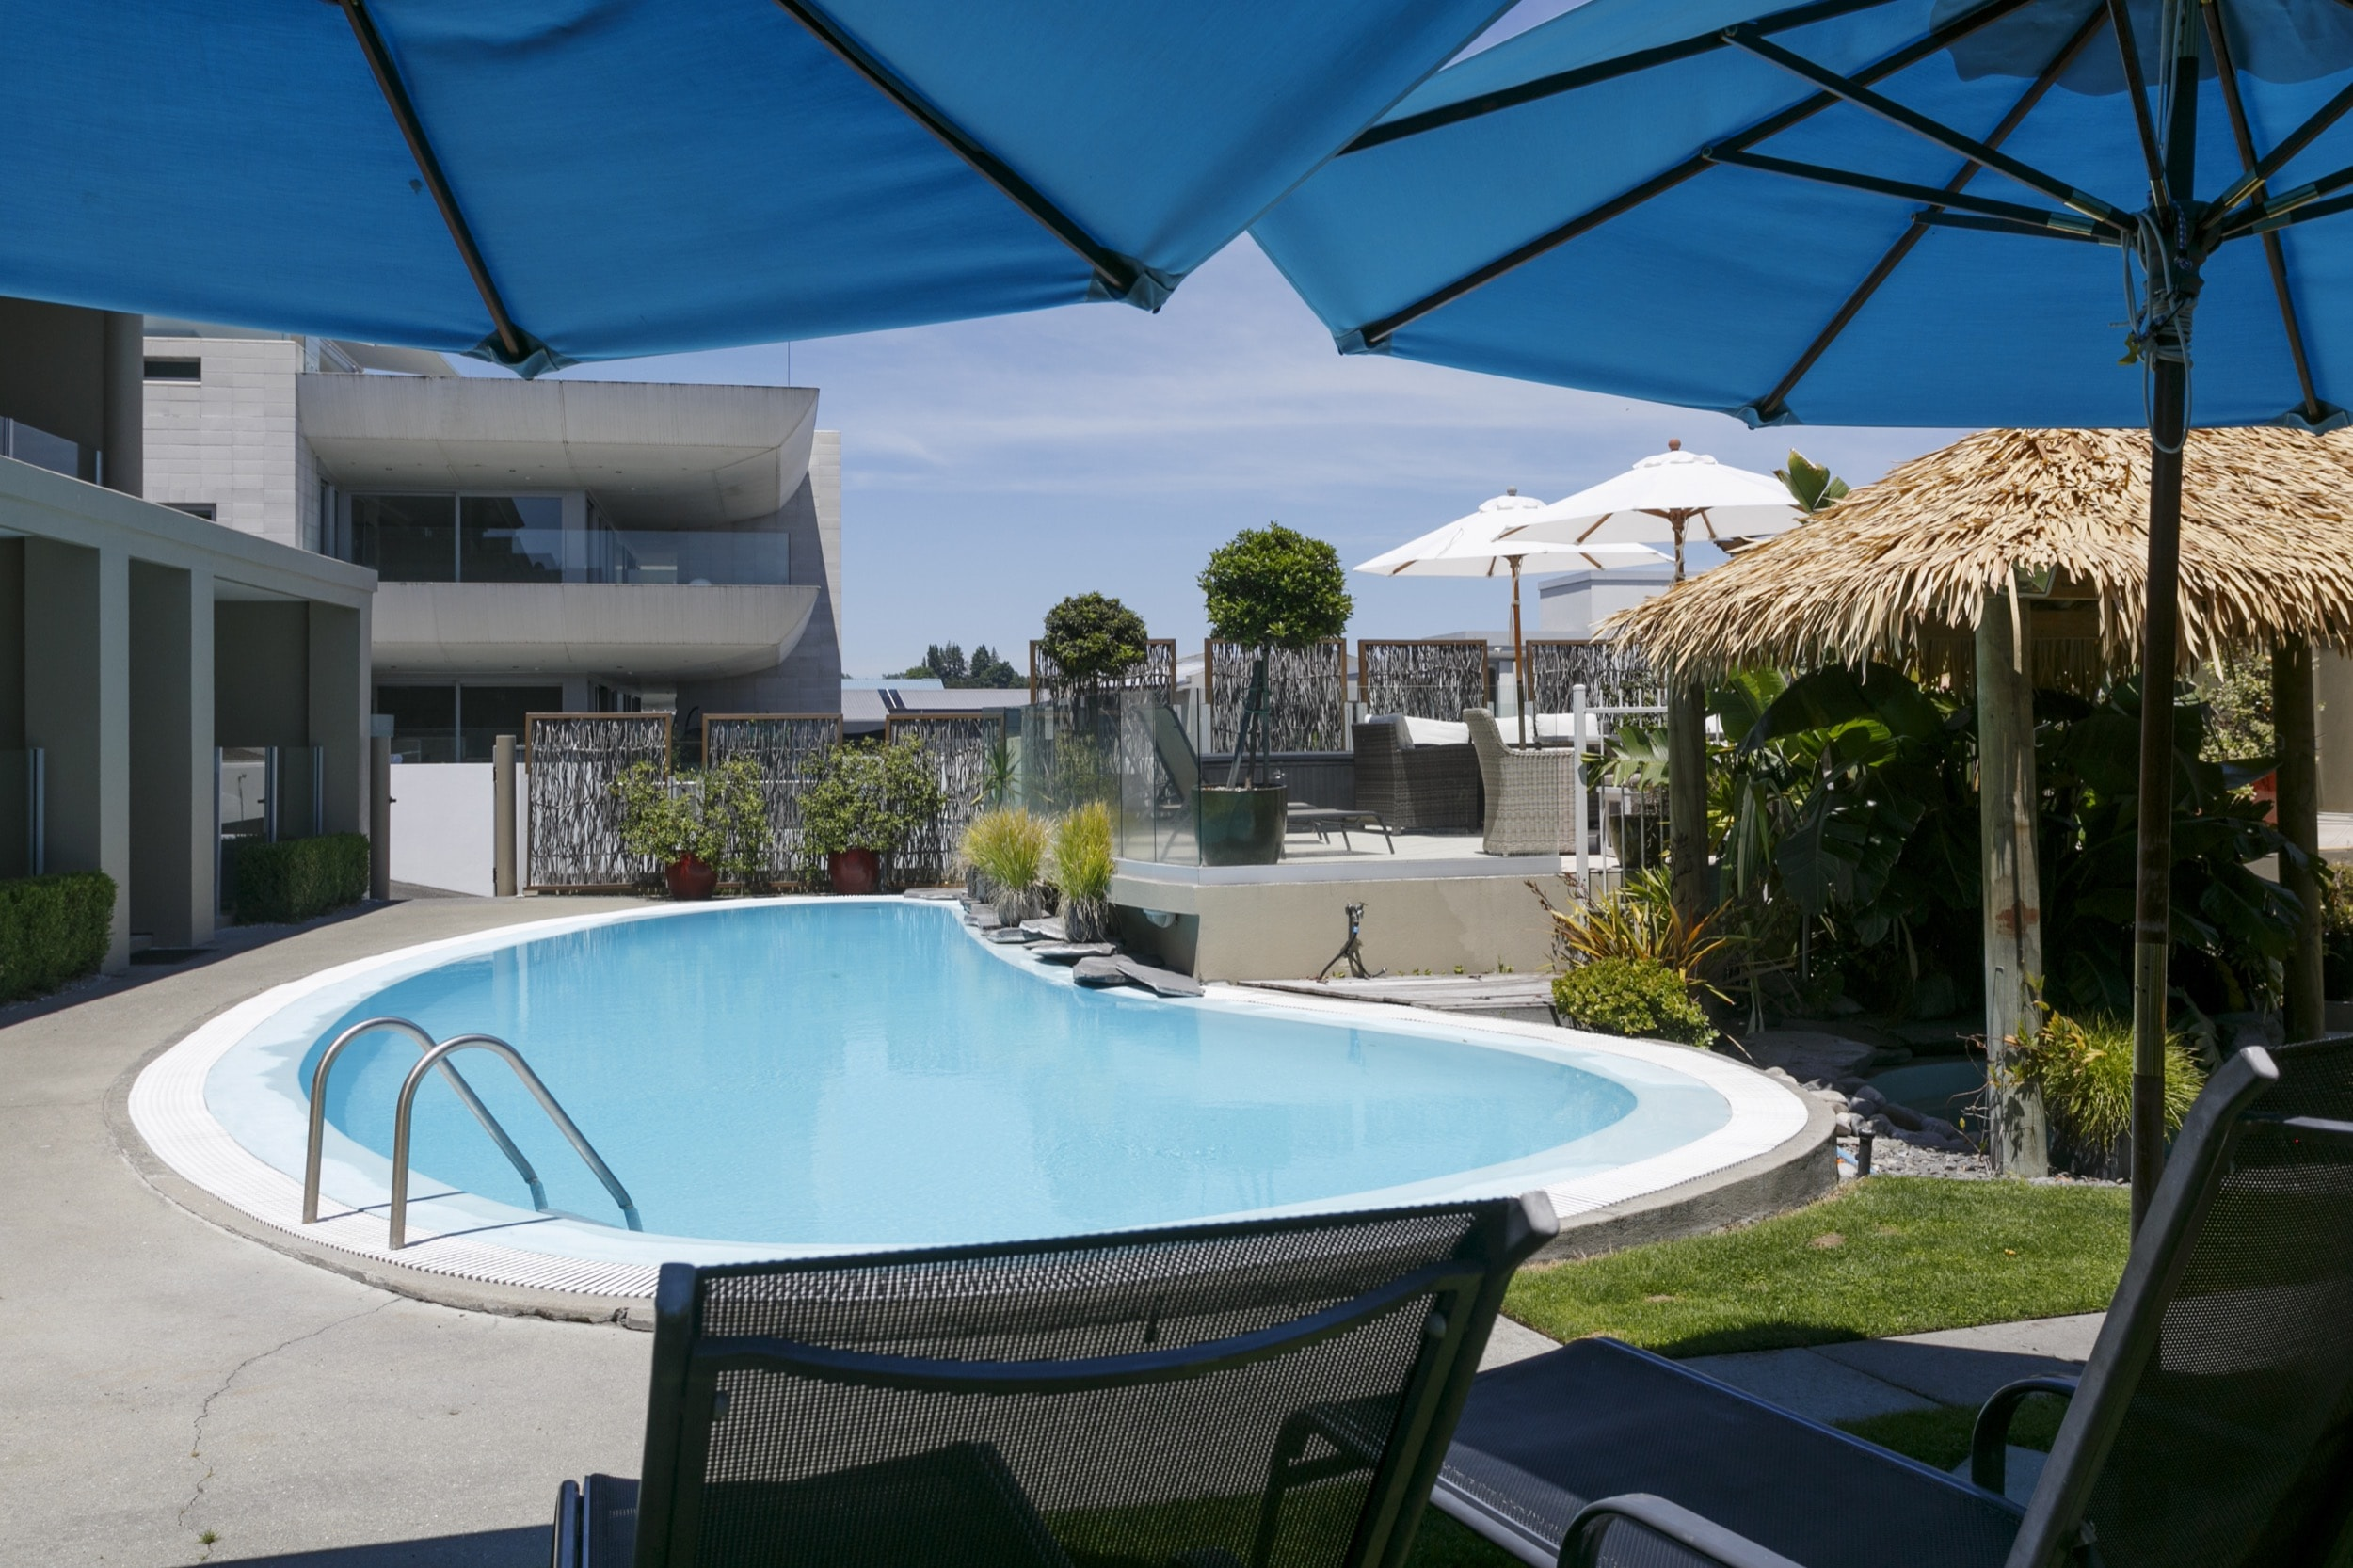 Pool area with heated swimming pool and thermal spa pool from BBQ area